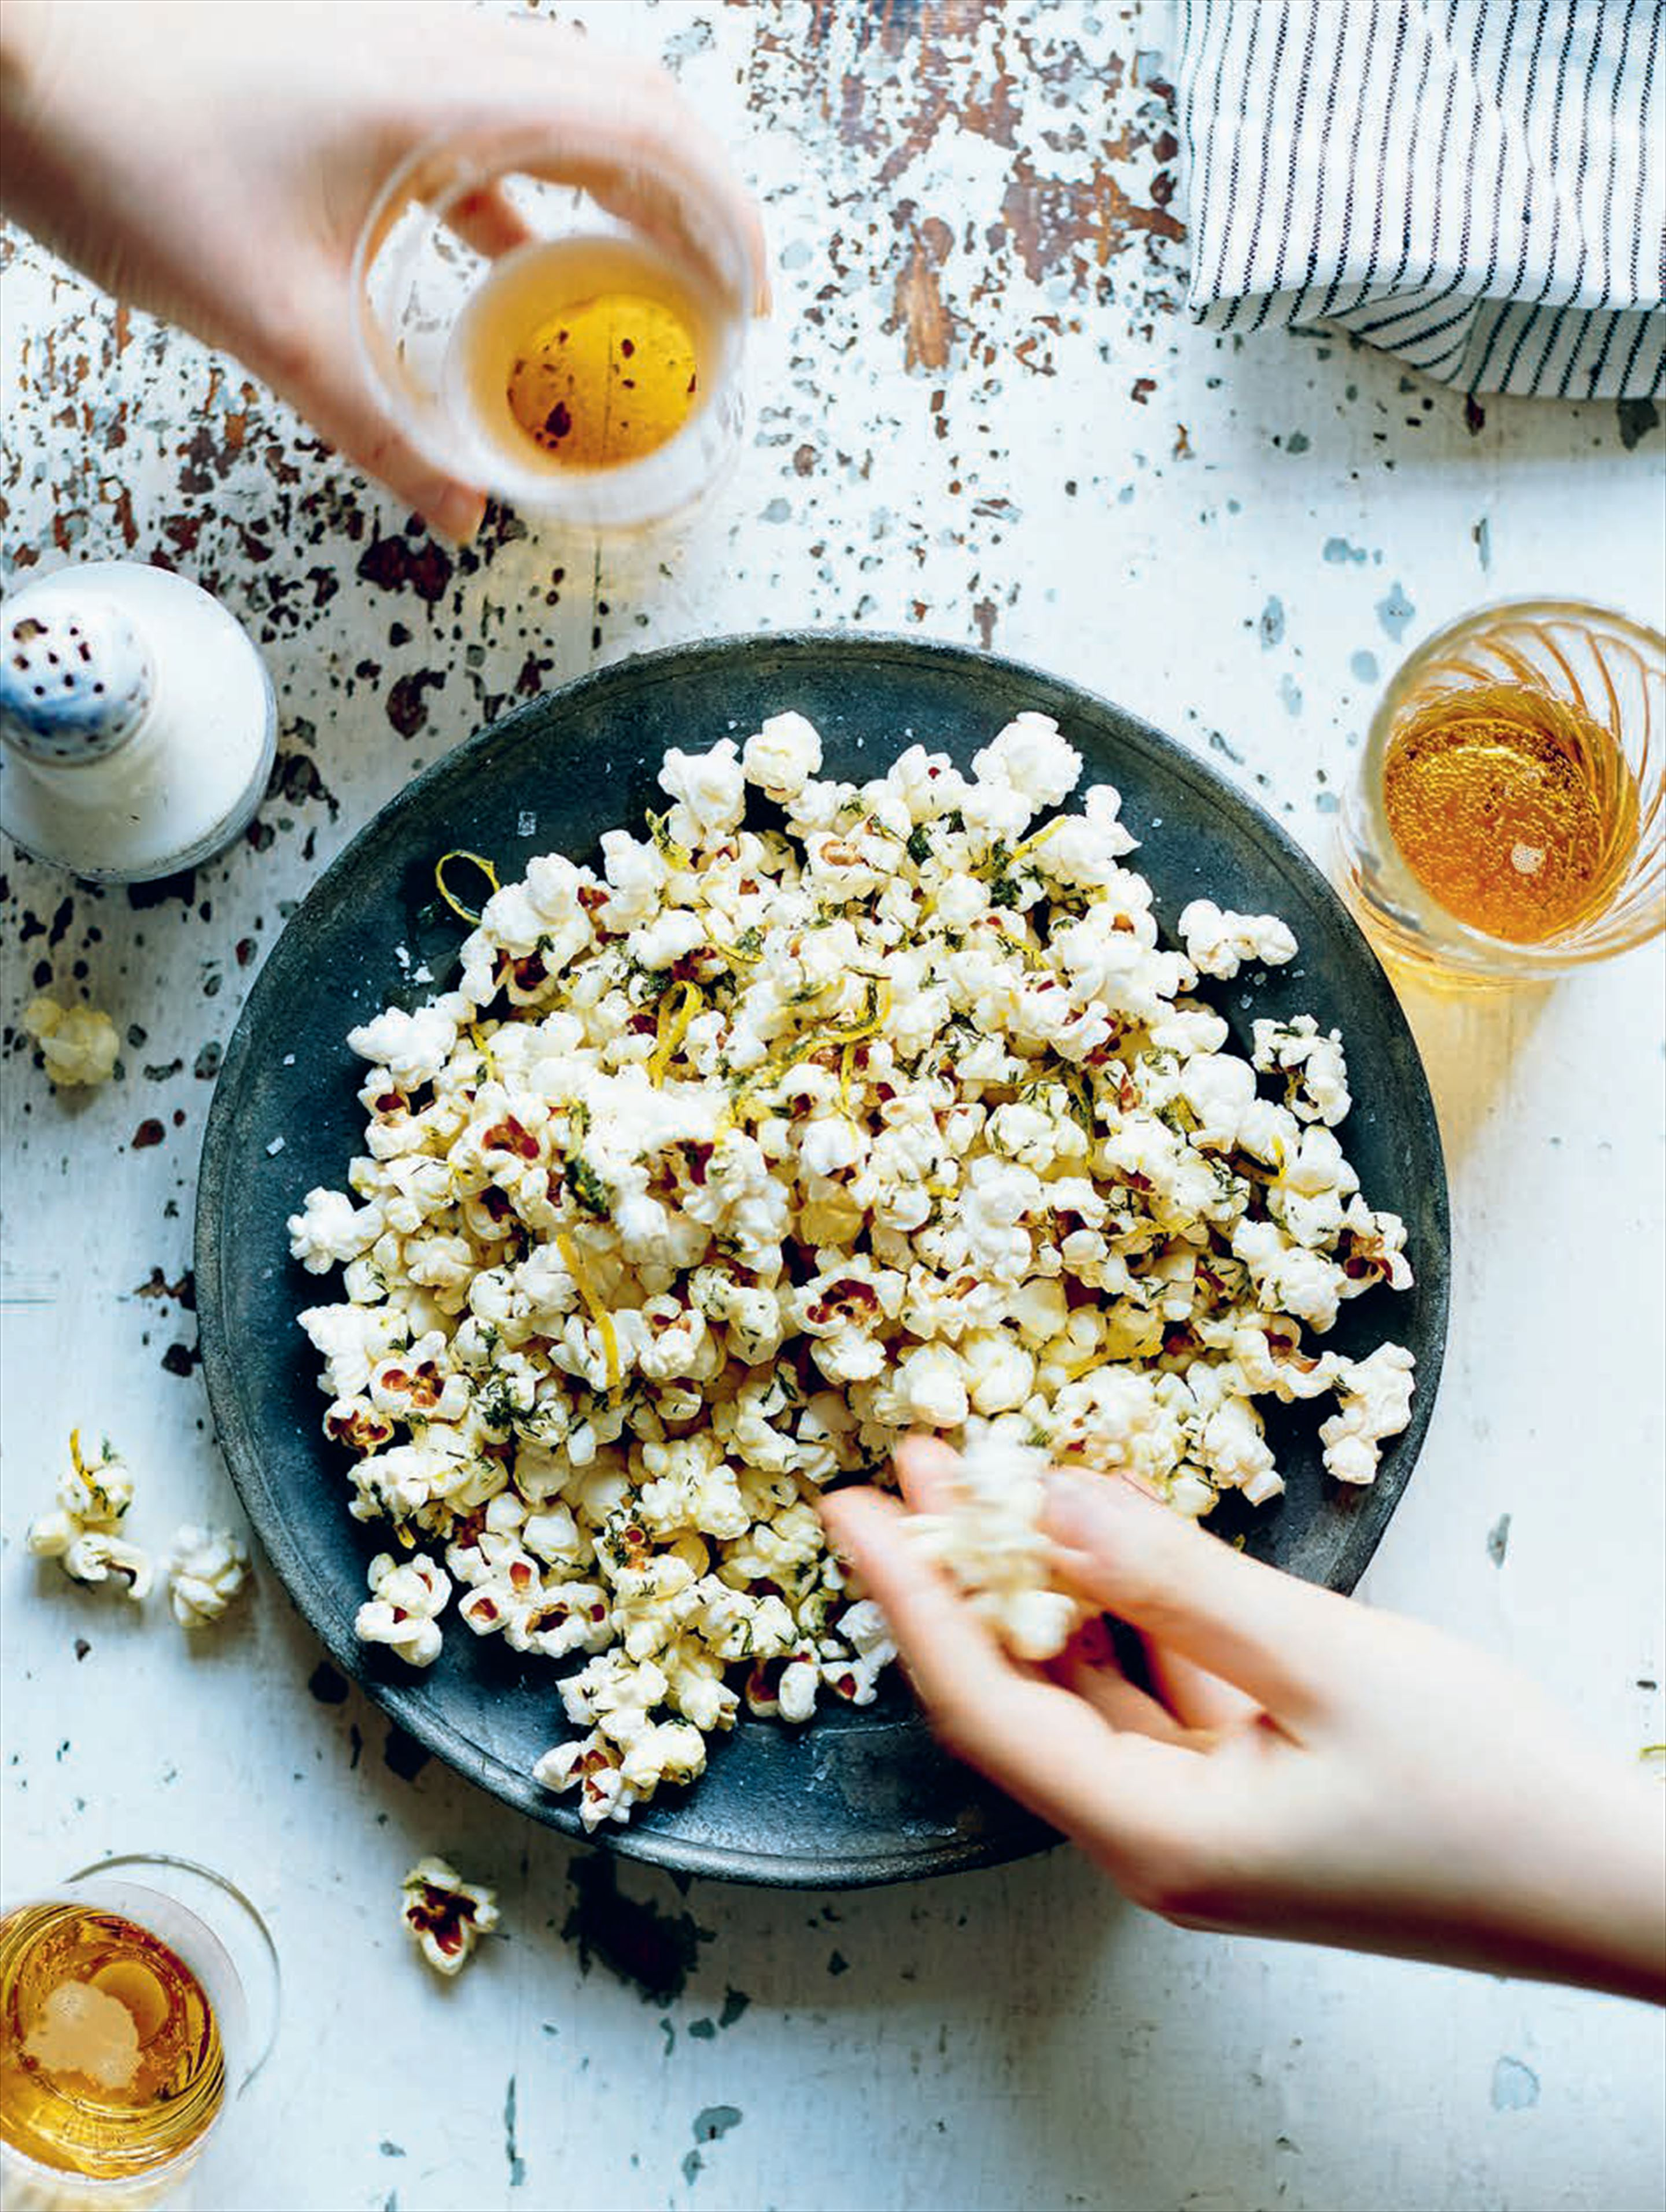 Lemon & dill popcorn for sharing [or not]